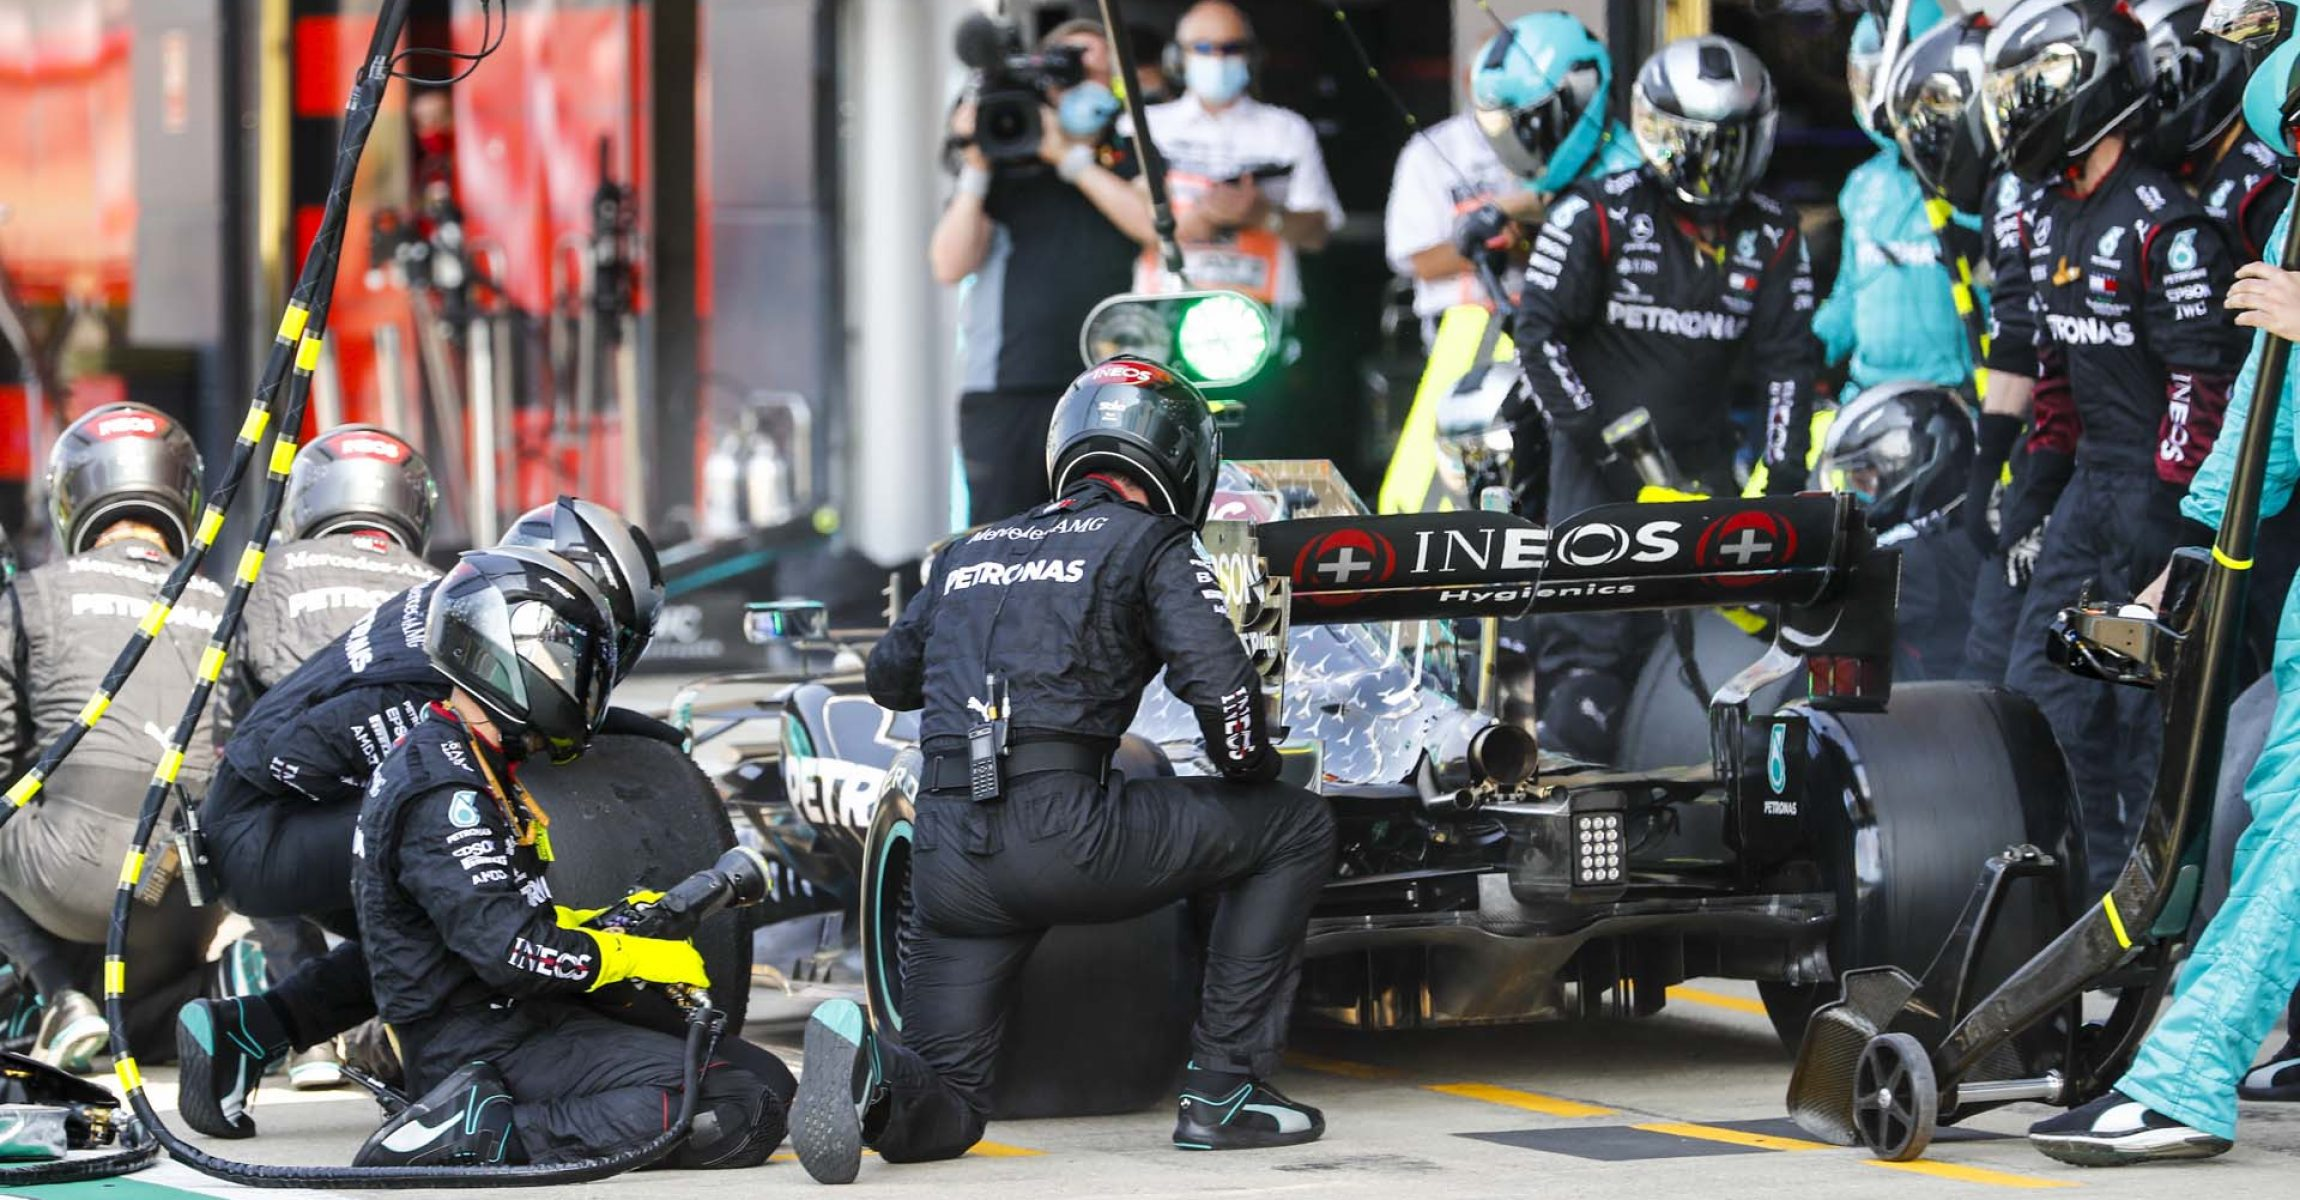 SILVERSTONE, UNITED KINGDOM - AUGUST 09: Valtteri Bottas, Mercedes F1 W11 EQ Performance pit stop during the 70th Anniversary GP at Silverstone on Sunday August 09, 2020 in Northamptonshire, United Kingdom. (Photo by Glenn Dunbar / LAT Images)